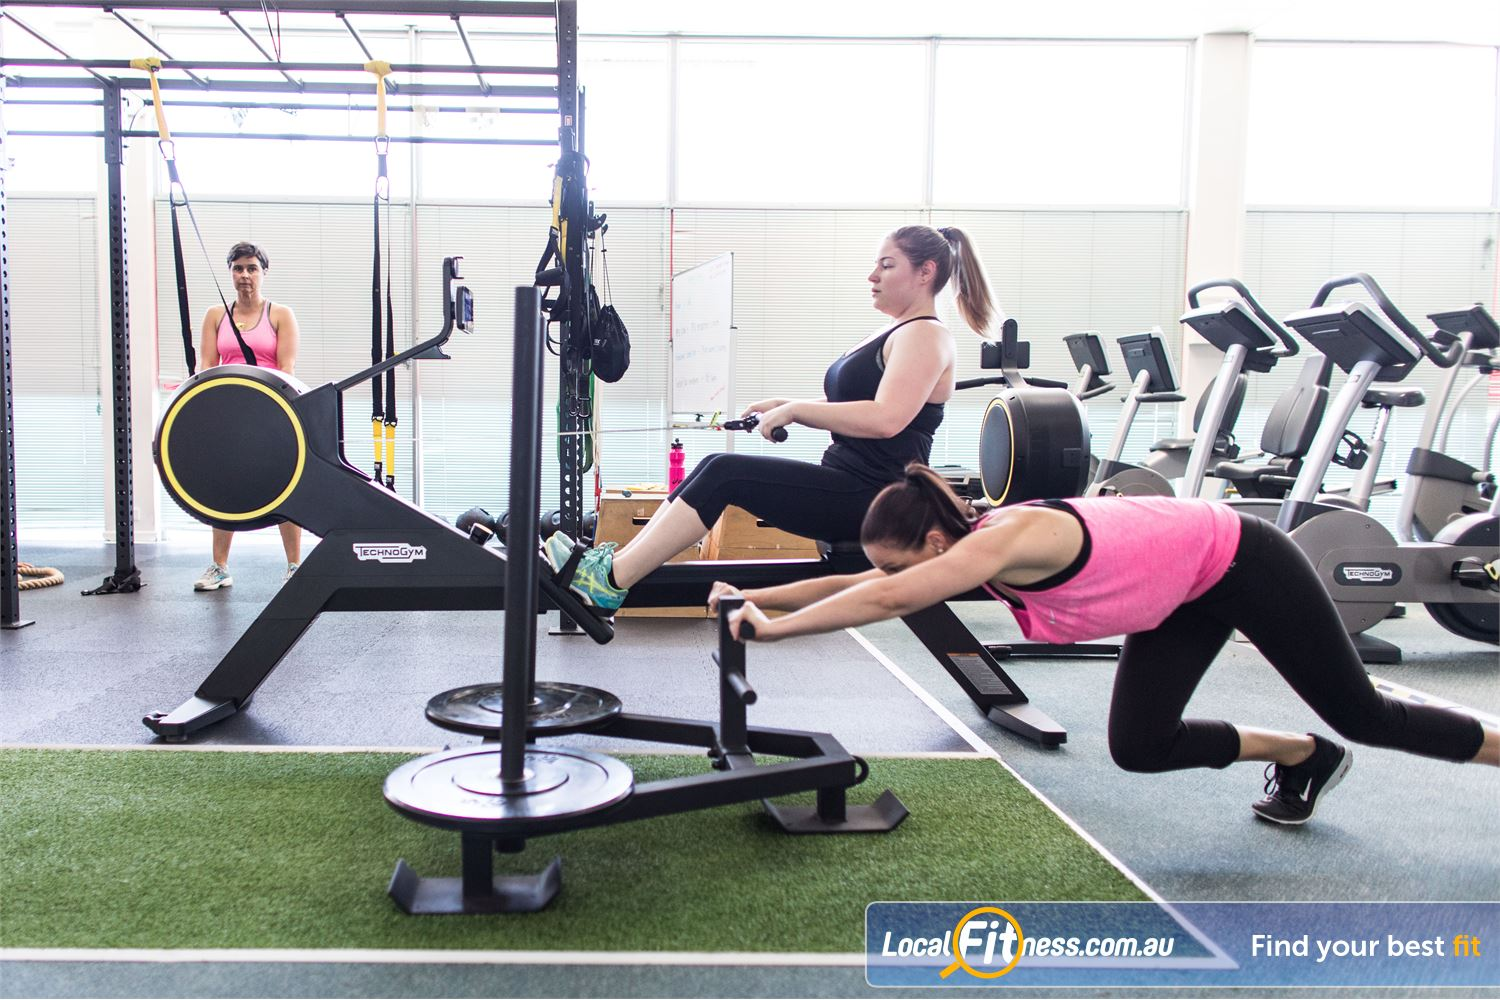 Fernwood Fitness Everton Park The Fernwood Everton Park gym provides a fun and friendly training facility.